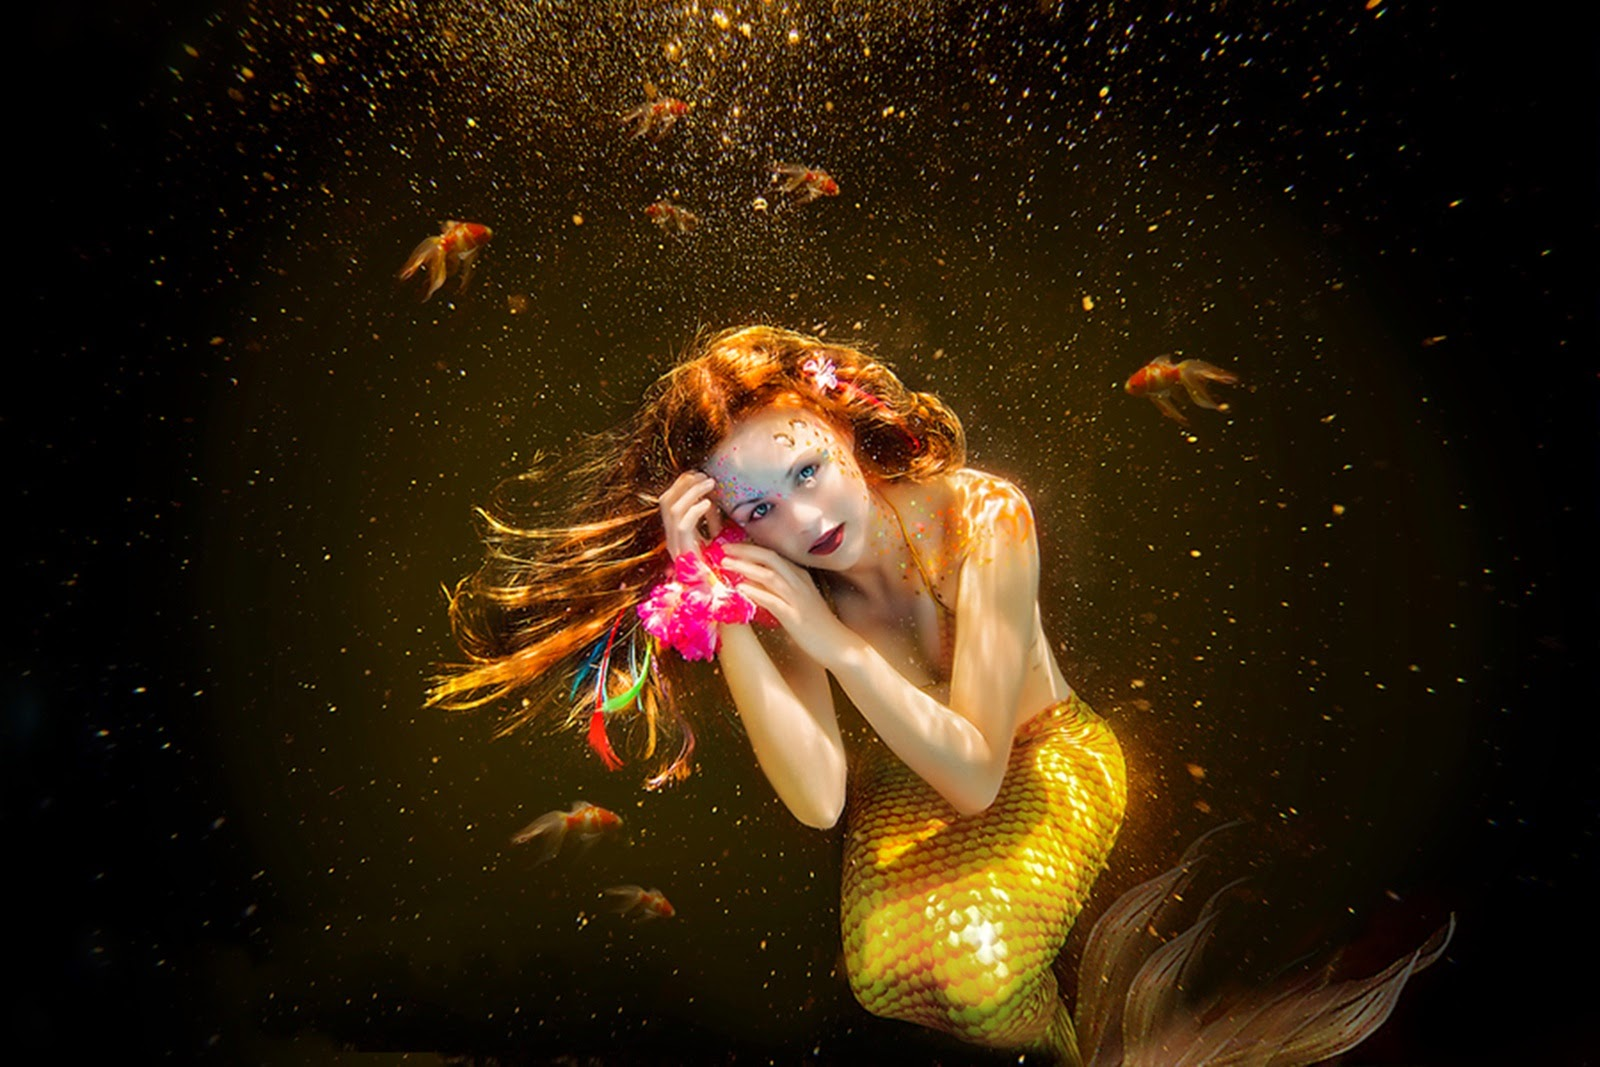 mermaid-photoshoot-underwater-golden-theme-fish-bubbles-1600x1067.jpg